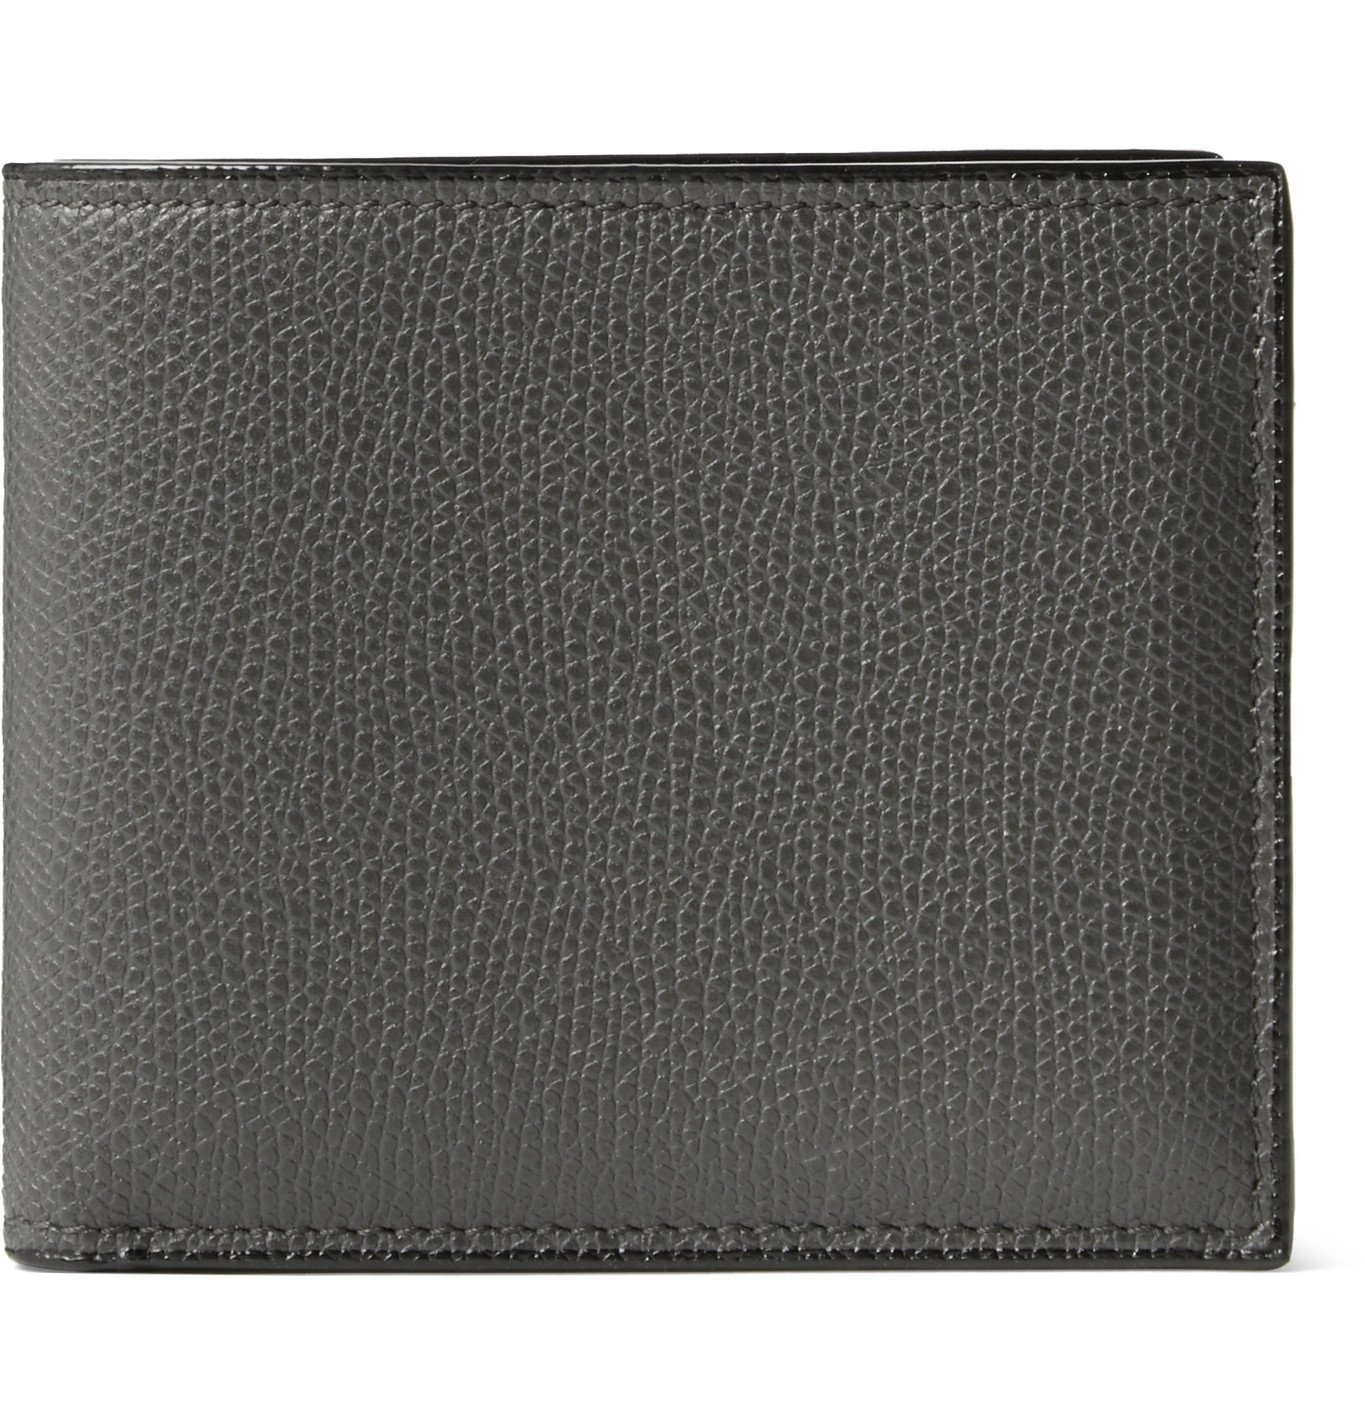 Photo: Valextra - Pebble-Grain Leather Billfold Wallet - Gray